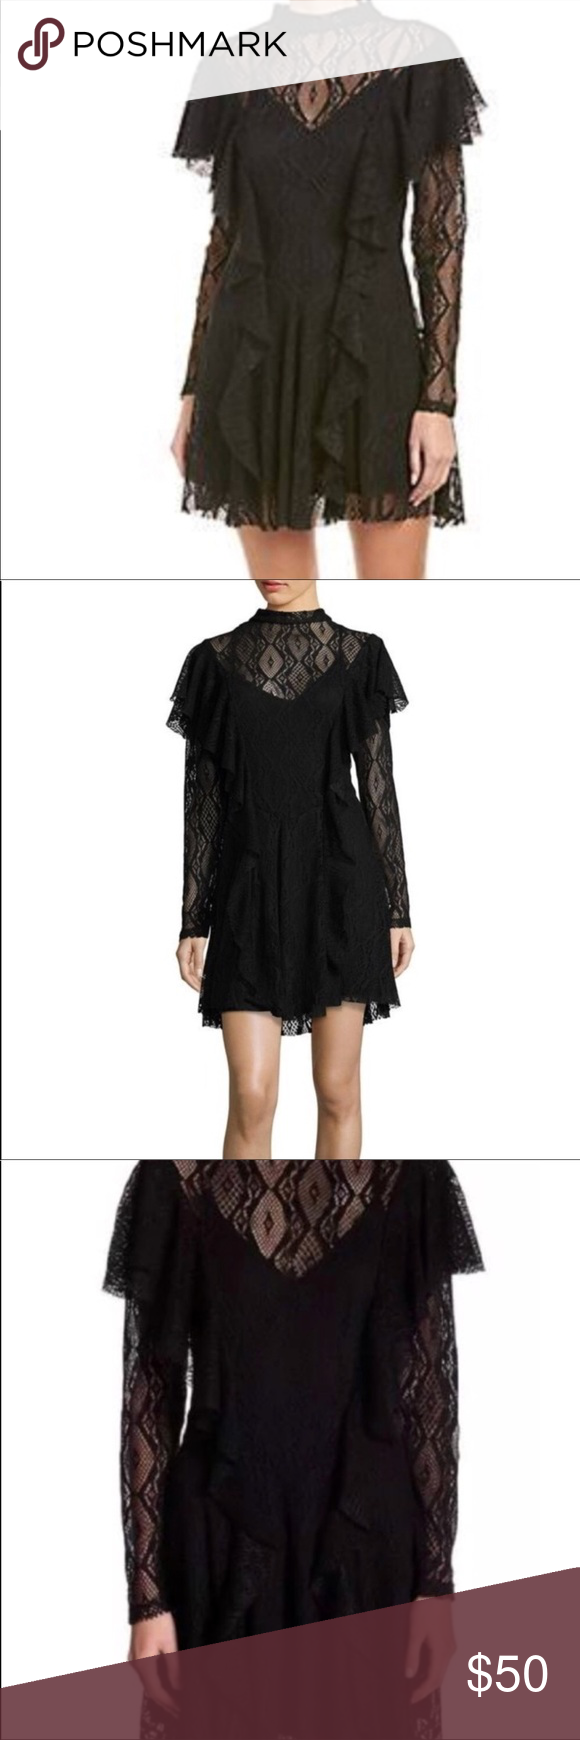 Nwt Free People Rock Candy Lace Black Party Dress Black Party Dresses Lace Dress Black Dresses [ 1740 x 580 Pixel ]